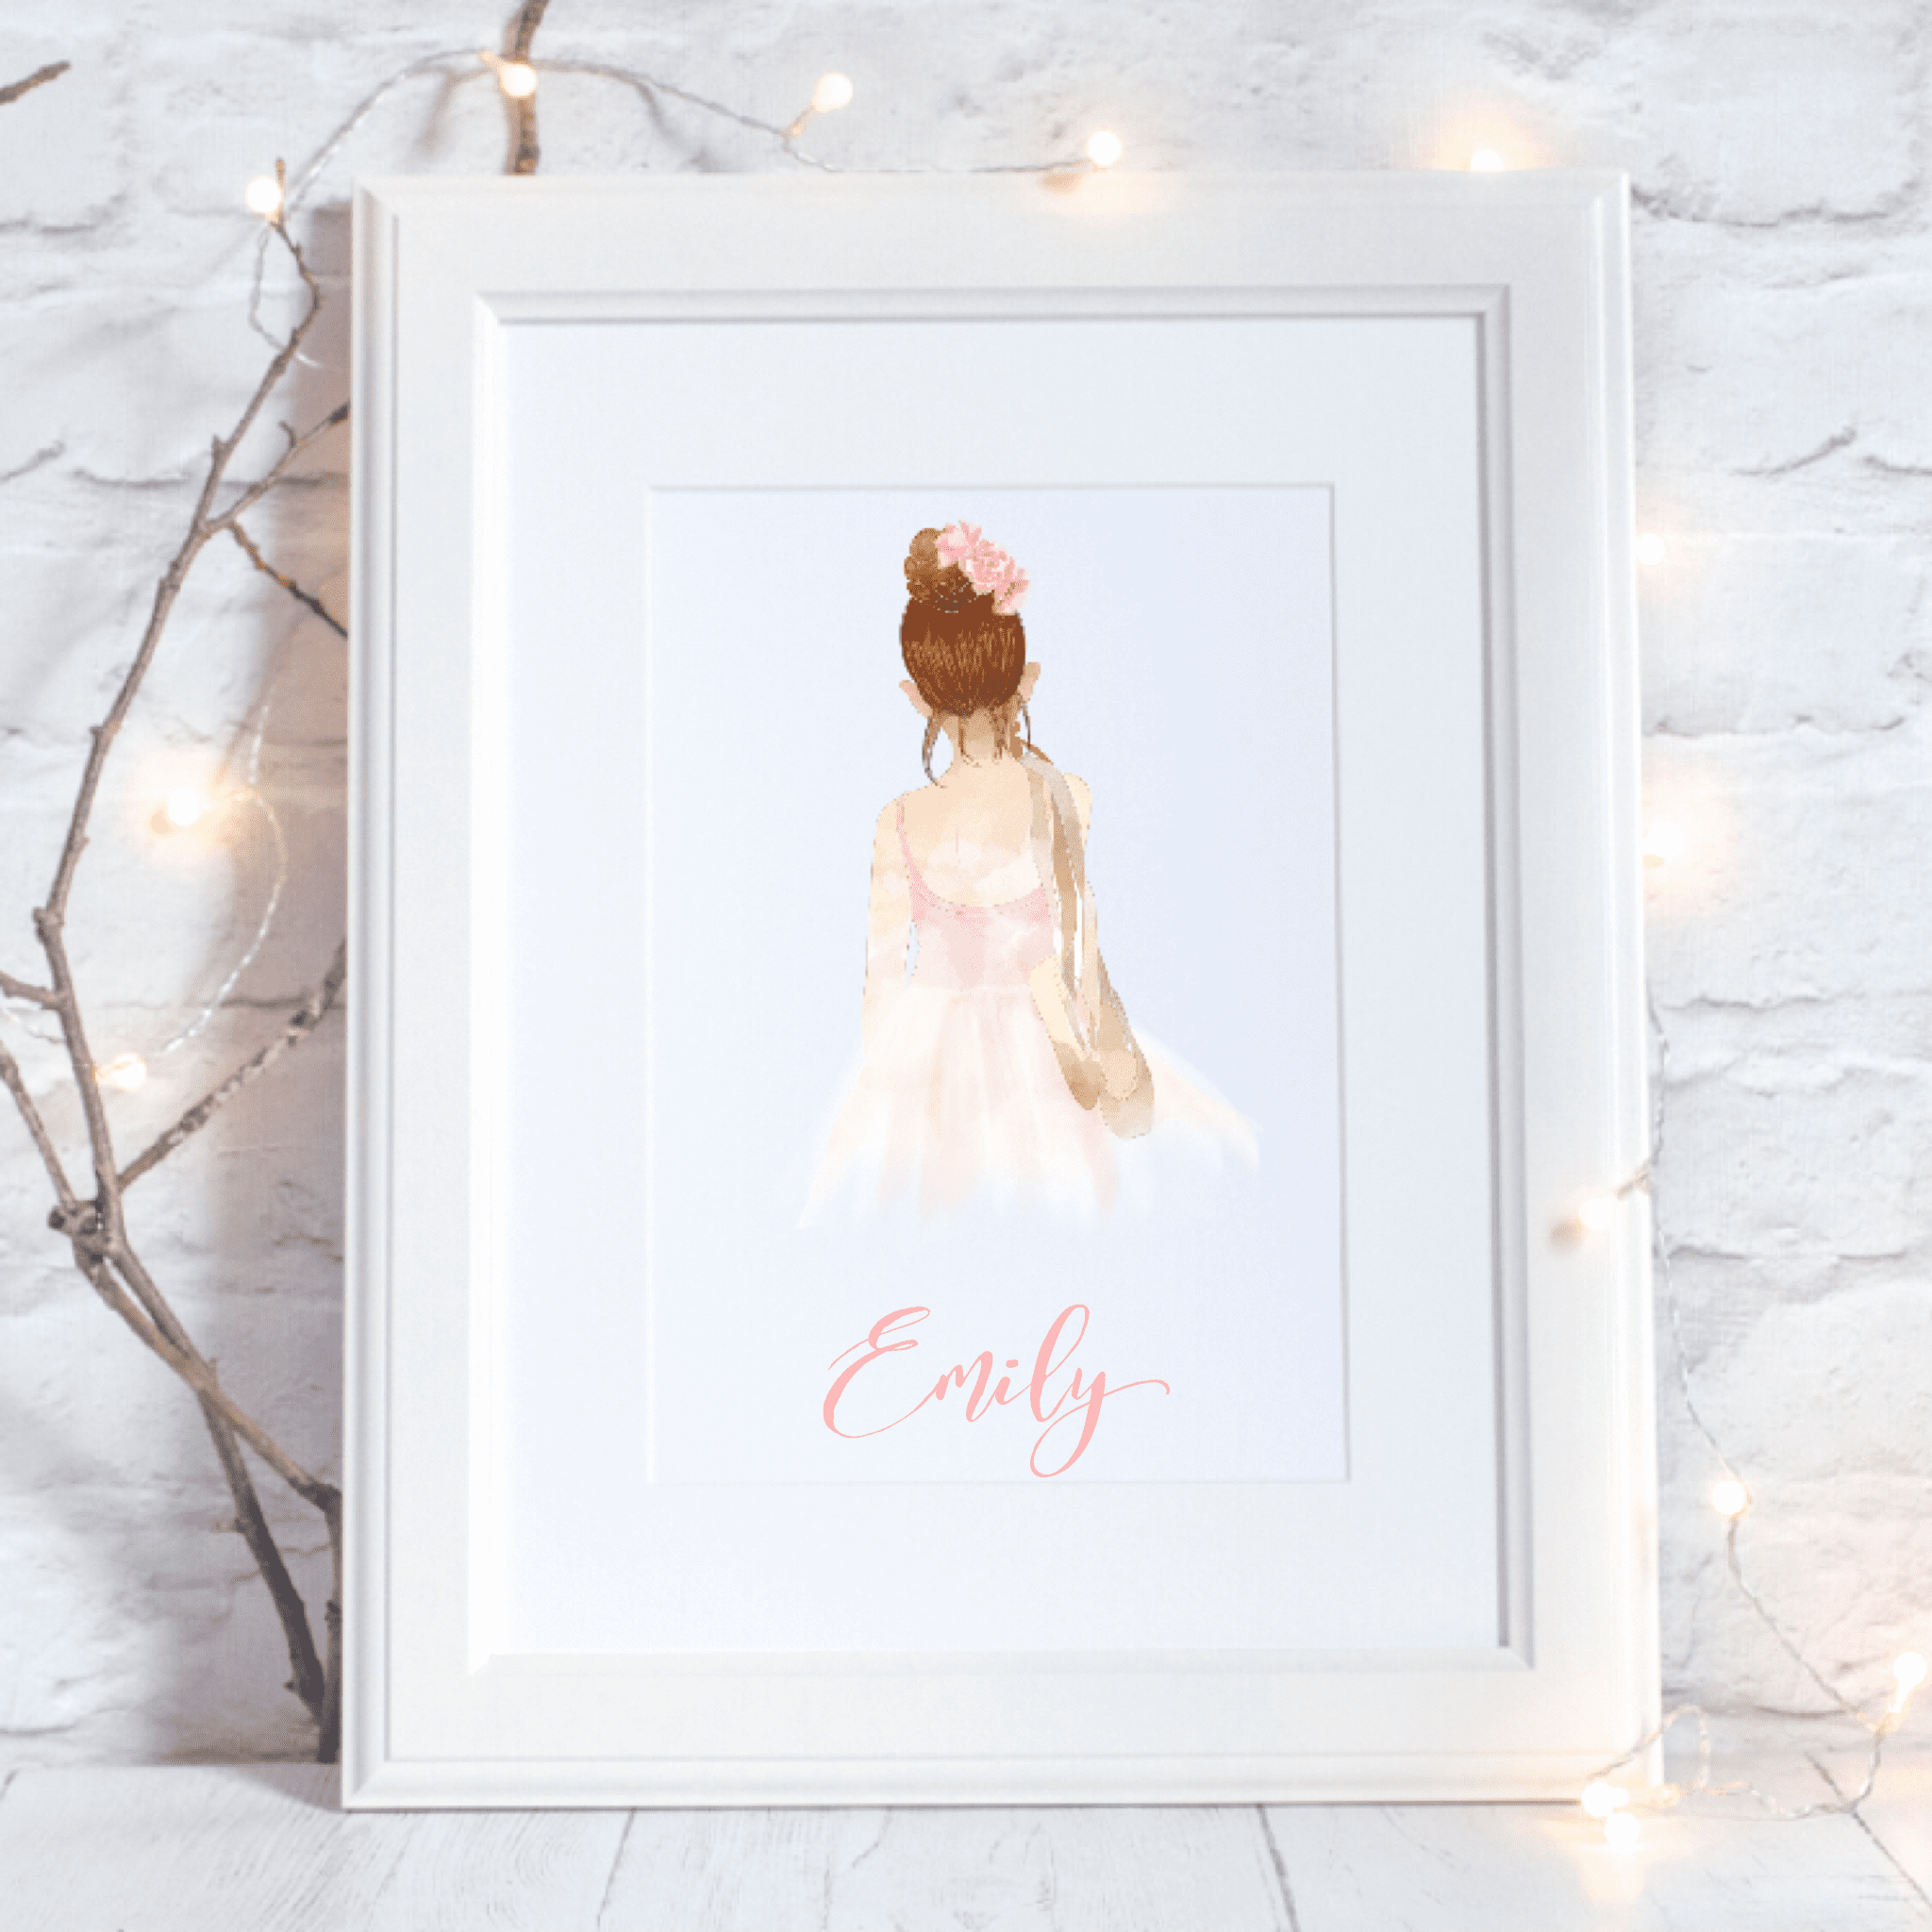 personalised-unframed-ballerina-love-print-11426-p.png